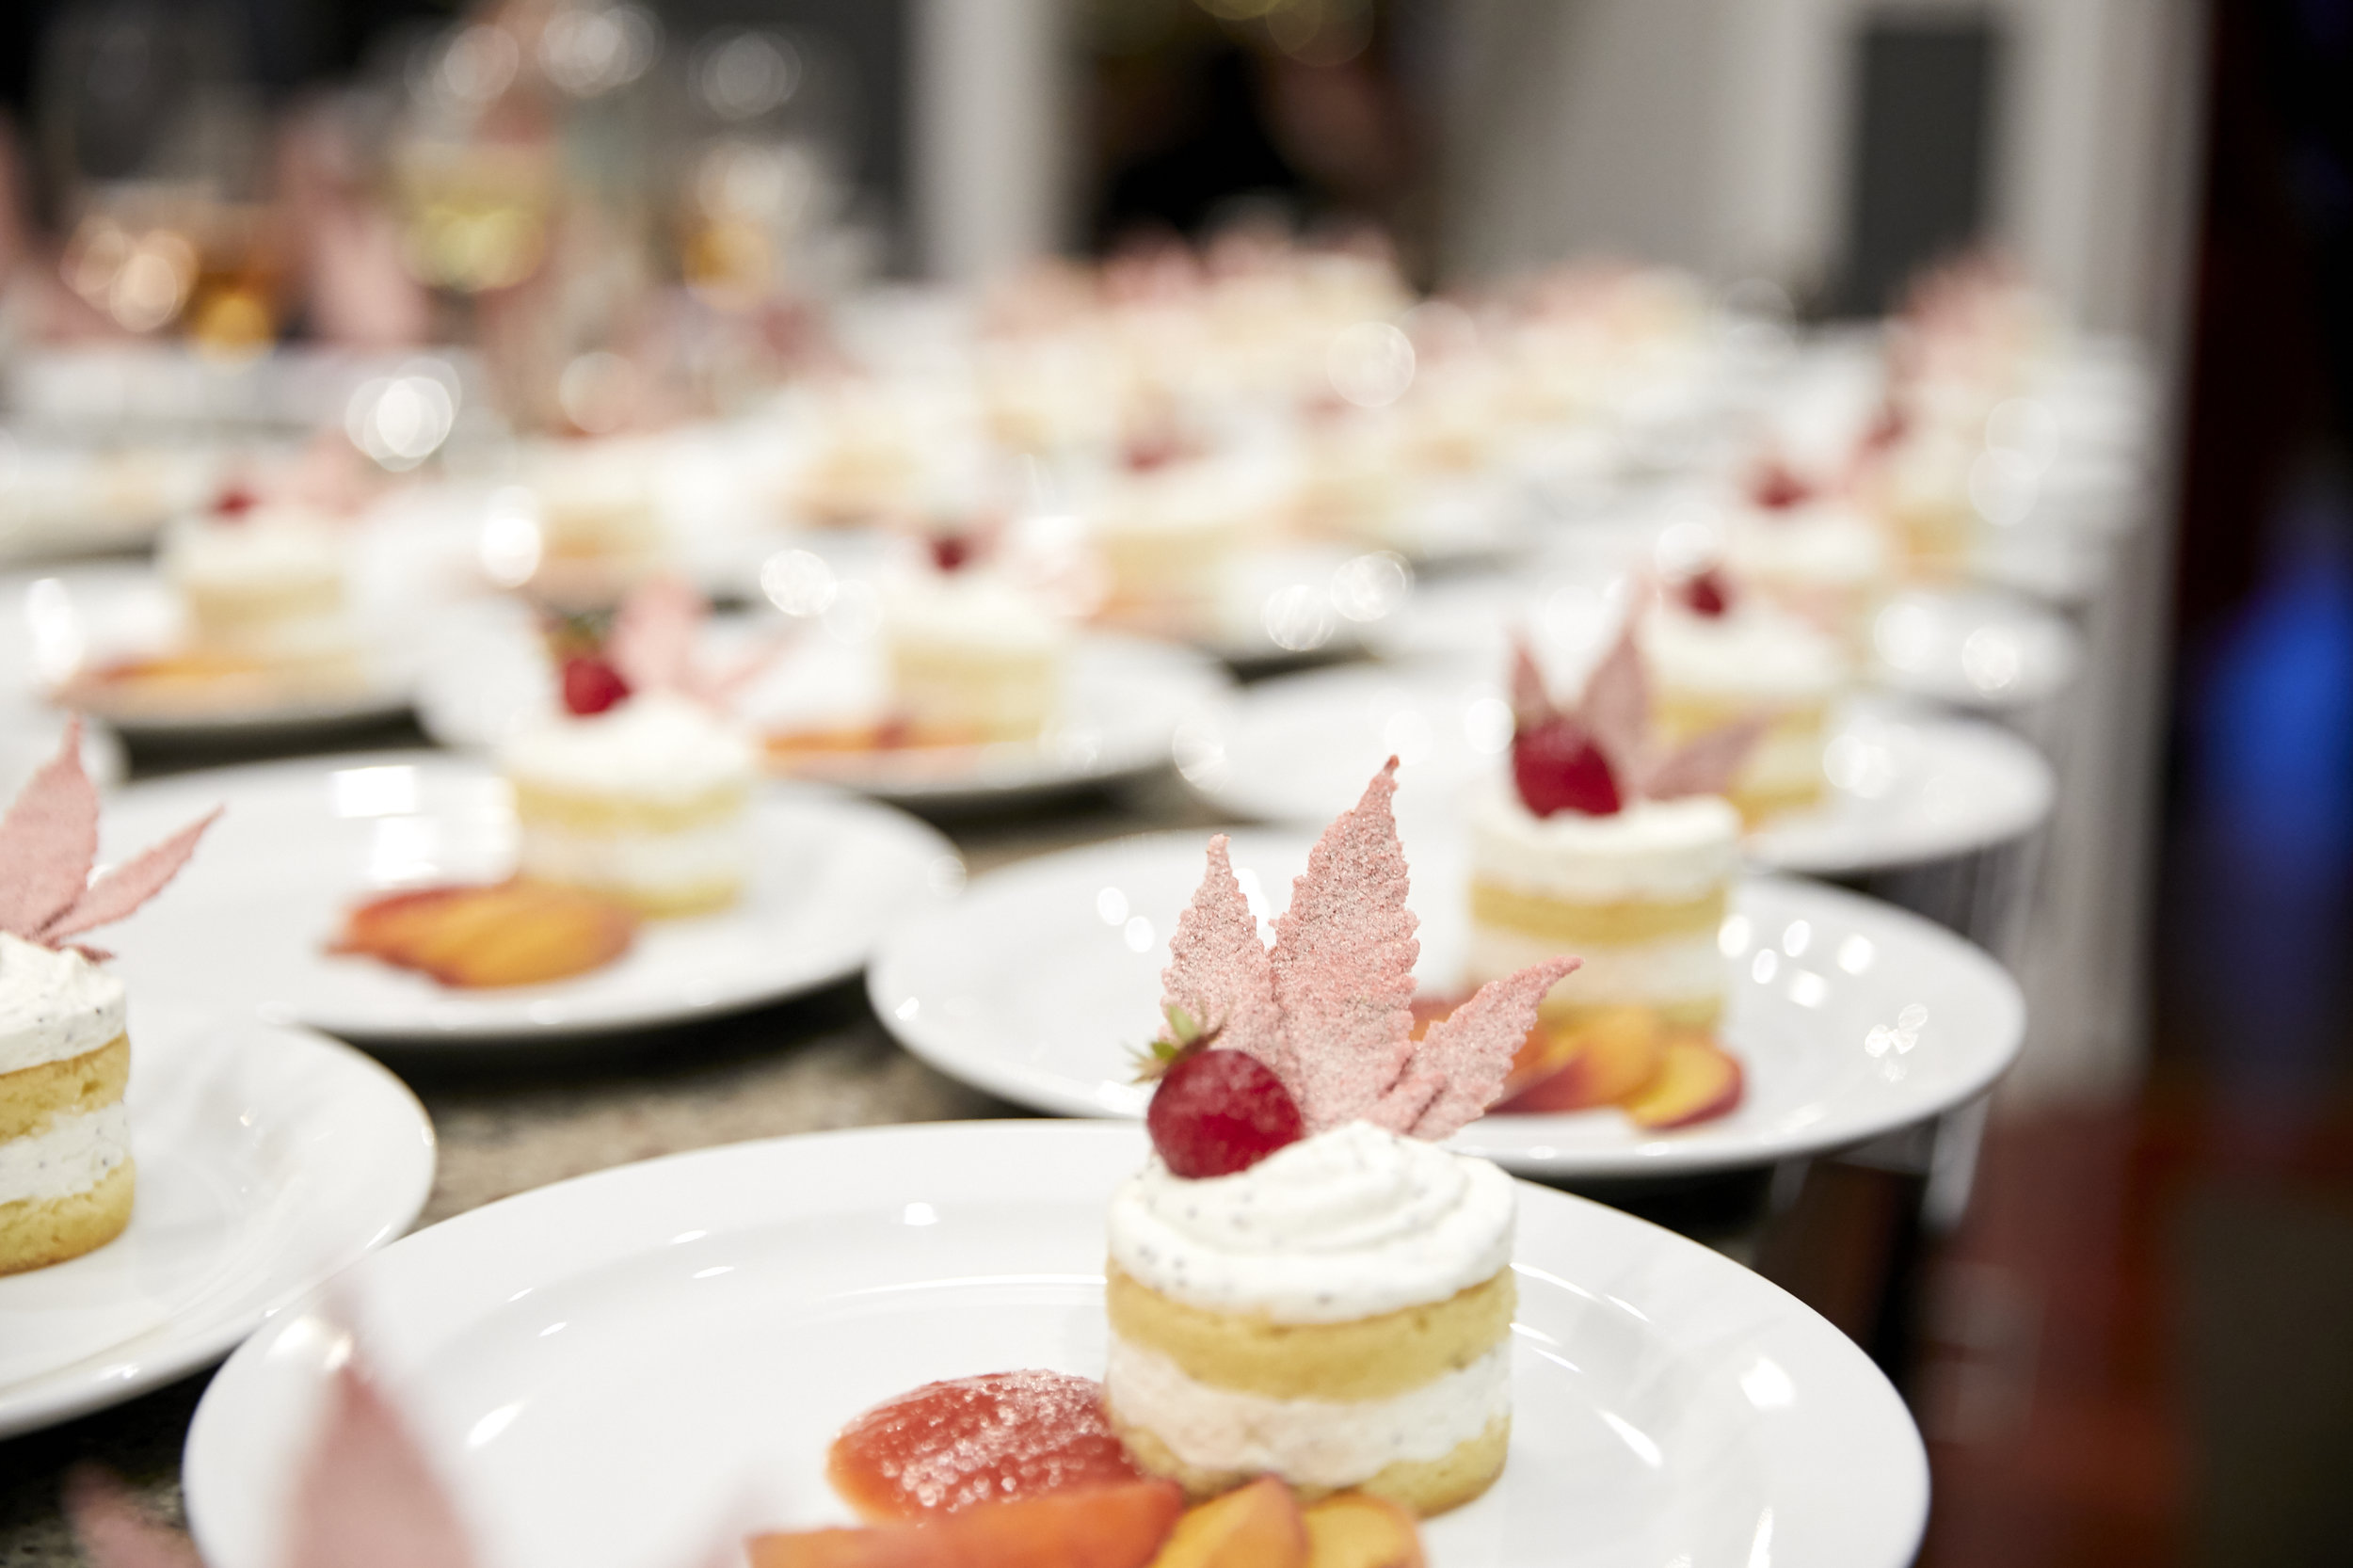 Almond Olive Oil Cake with Candied Canna Leaf paired with Anselmi i Capitelli dessert wine served at The Herb Somm's Thurday Infused event photo credit Tyler Arneson.jpg